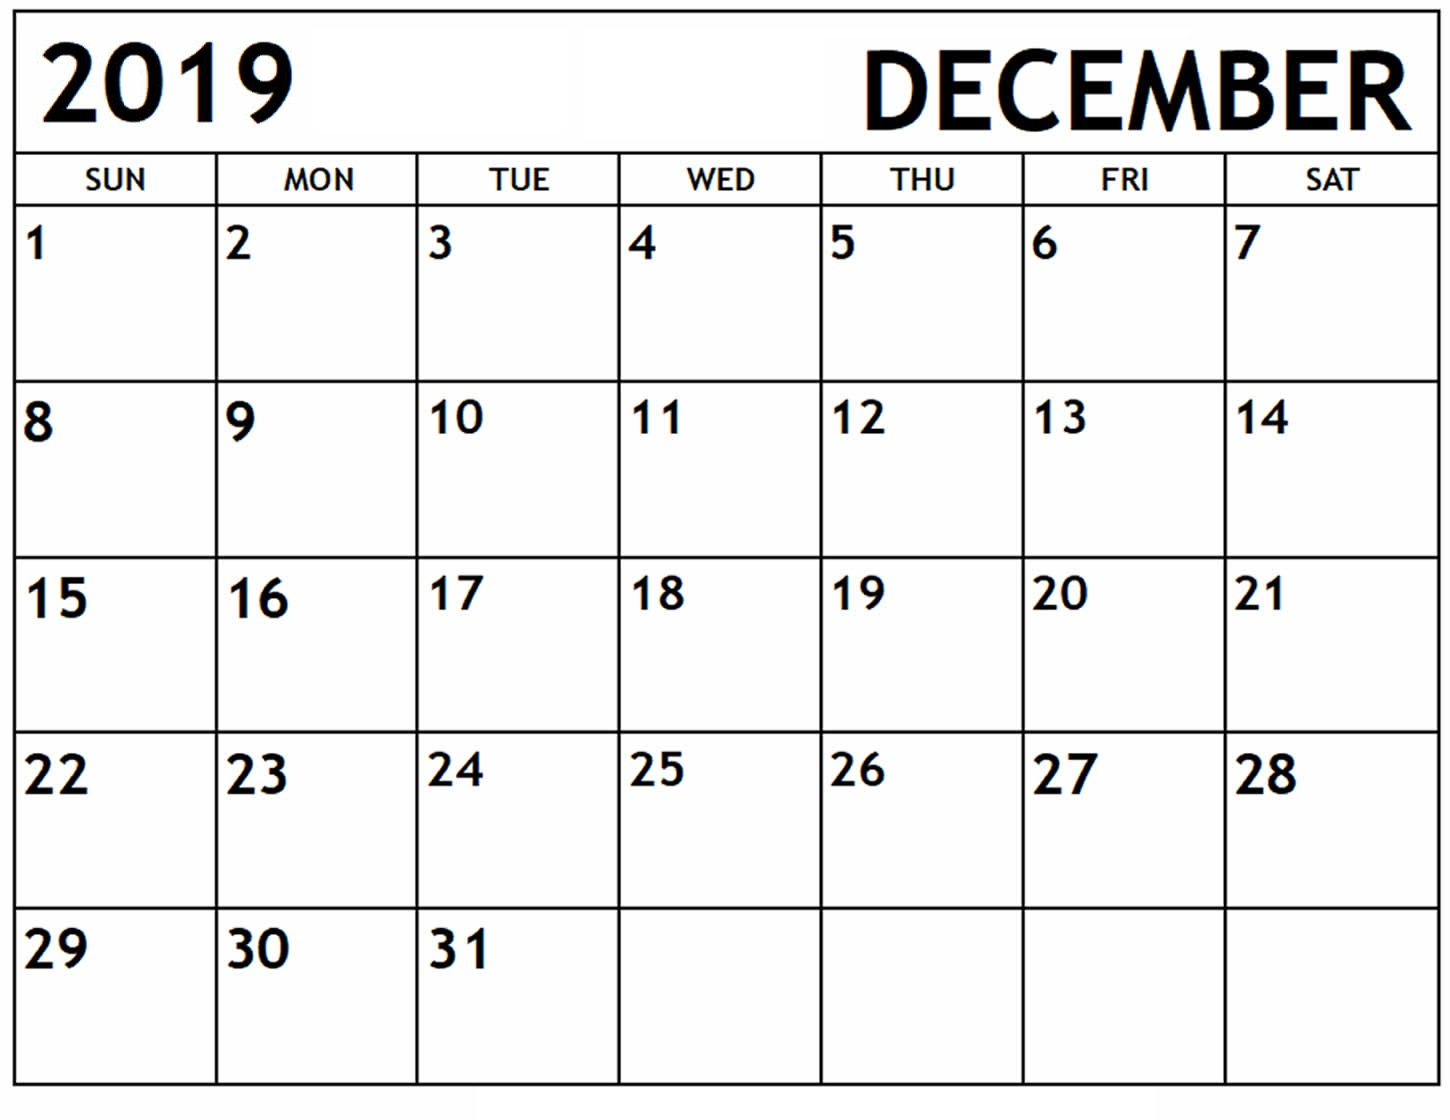 December 2019 Calendar Printable Daily, Monthly, Weekly